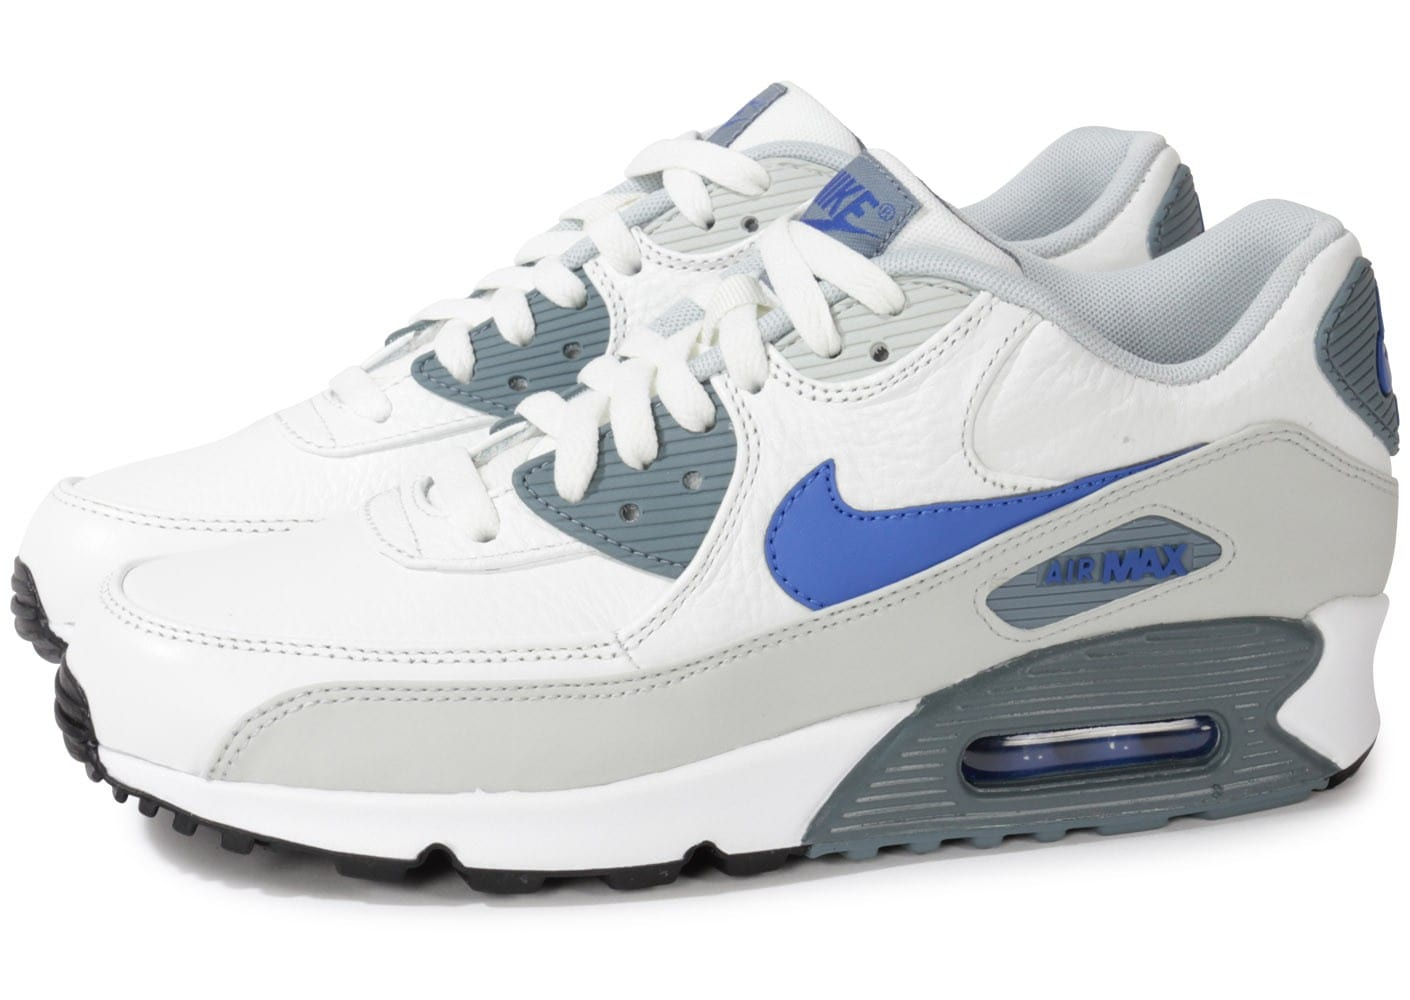 Nike Air Max 90 Ltr Blanche Chaussures Baskets homme